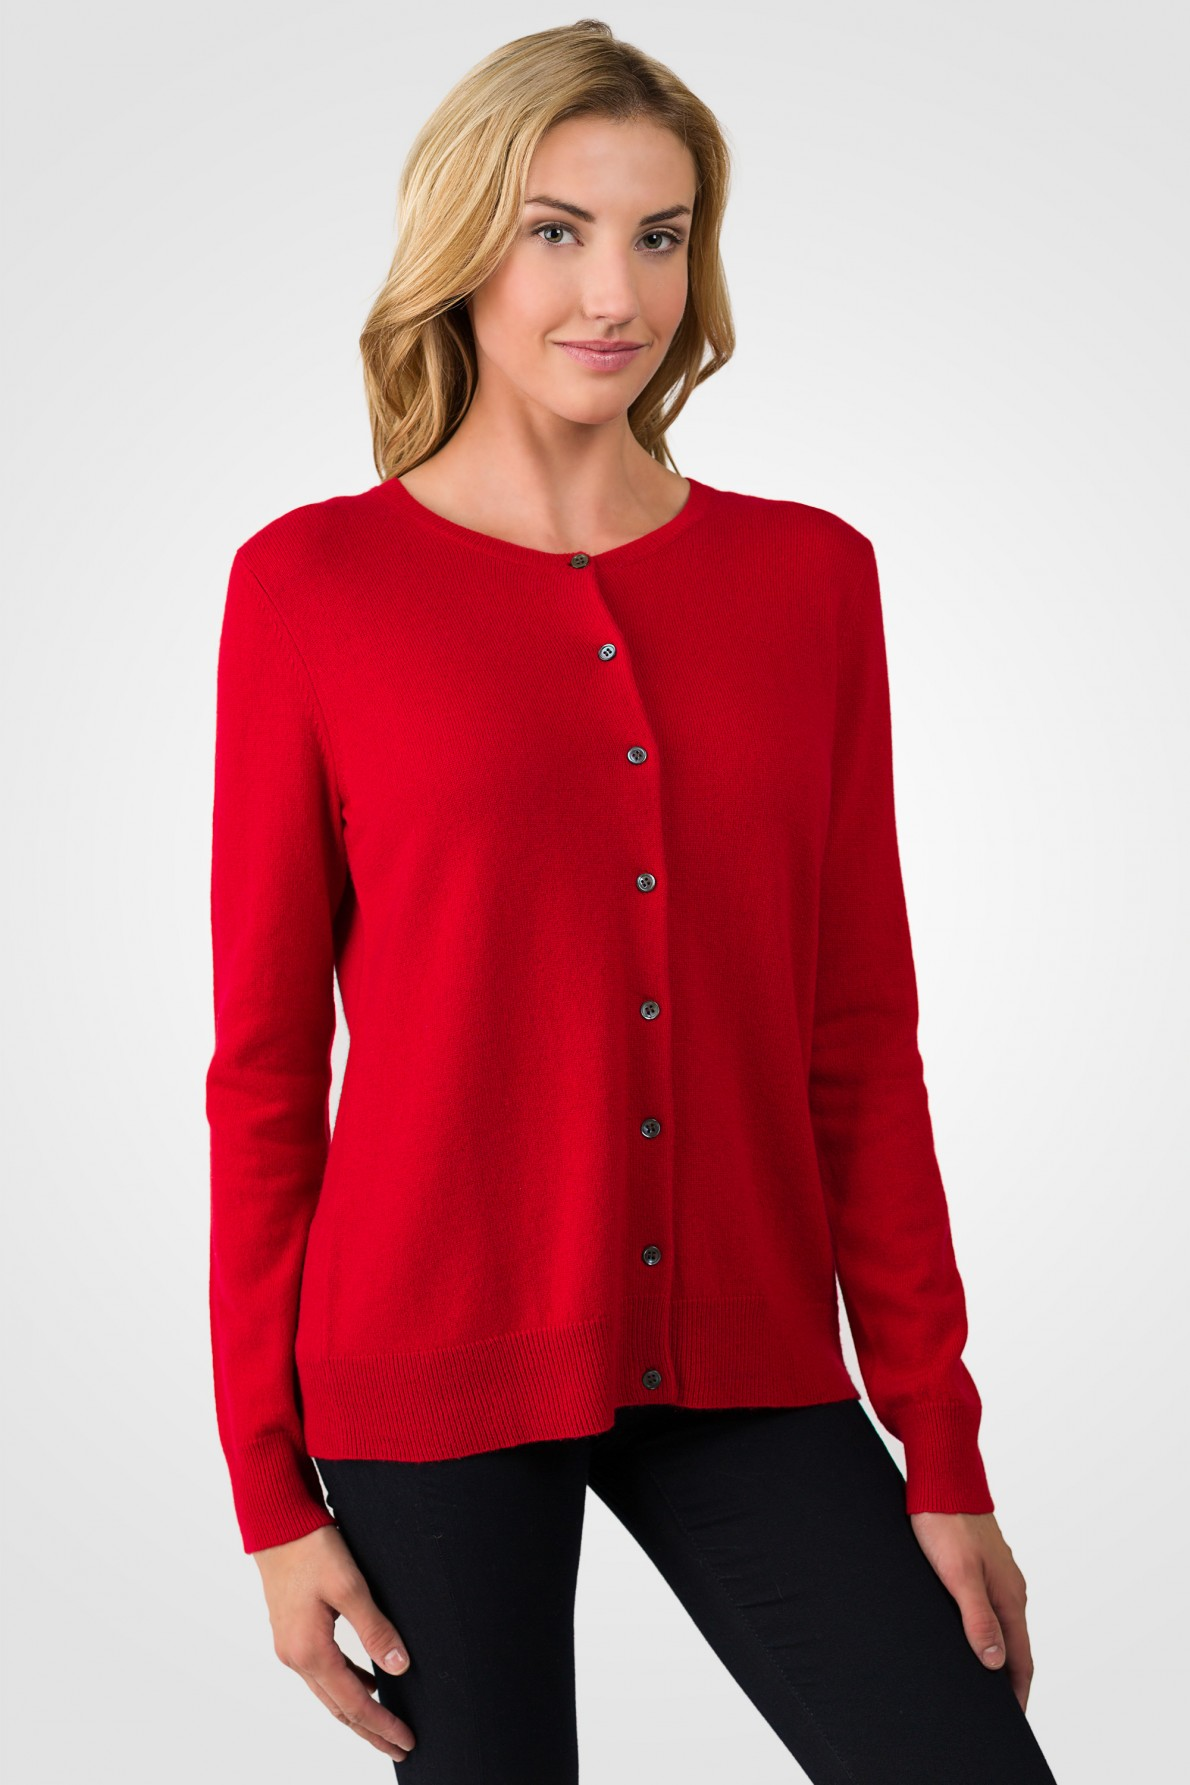 cashmere cardigan red cashmere button front cardigan sweater right side view pbfqlgb